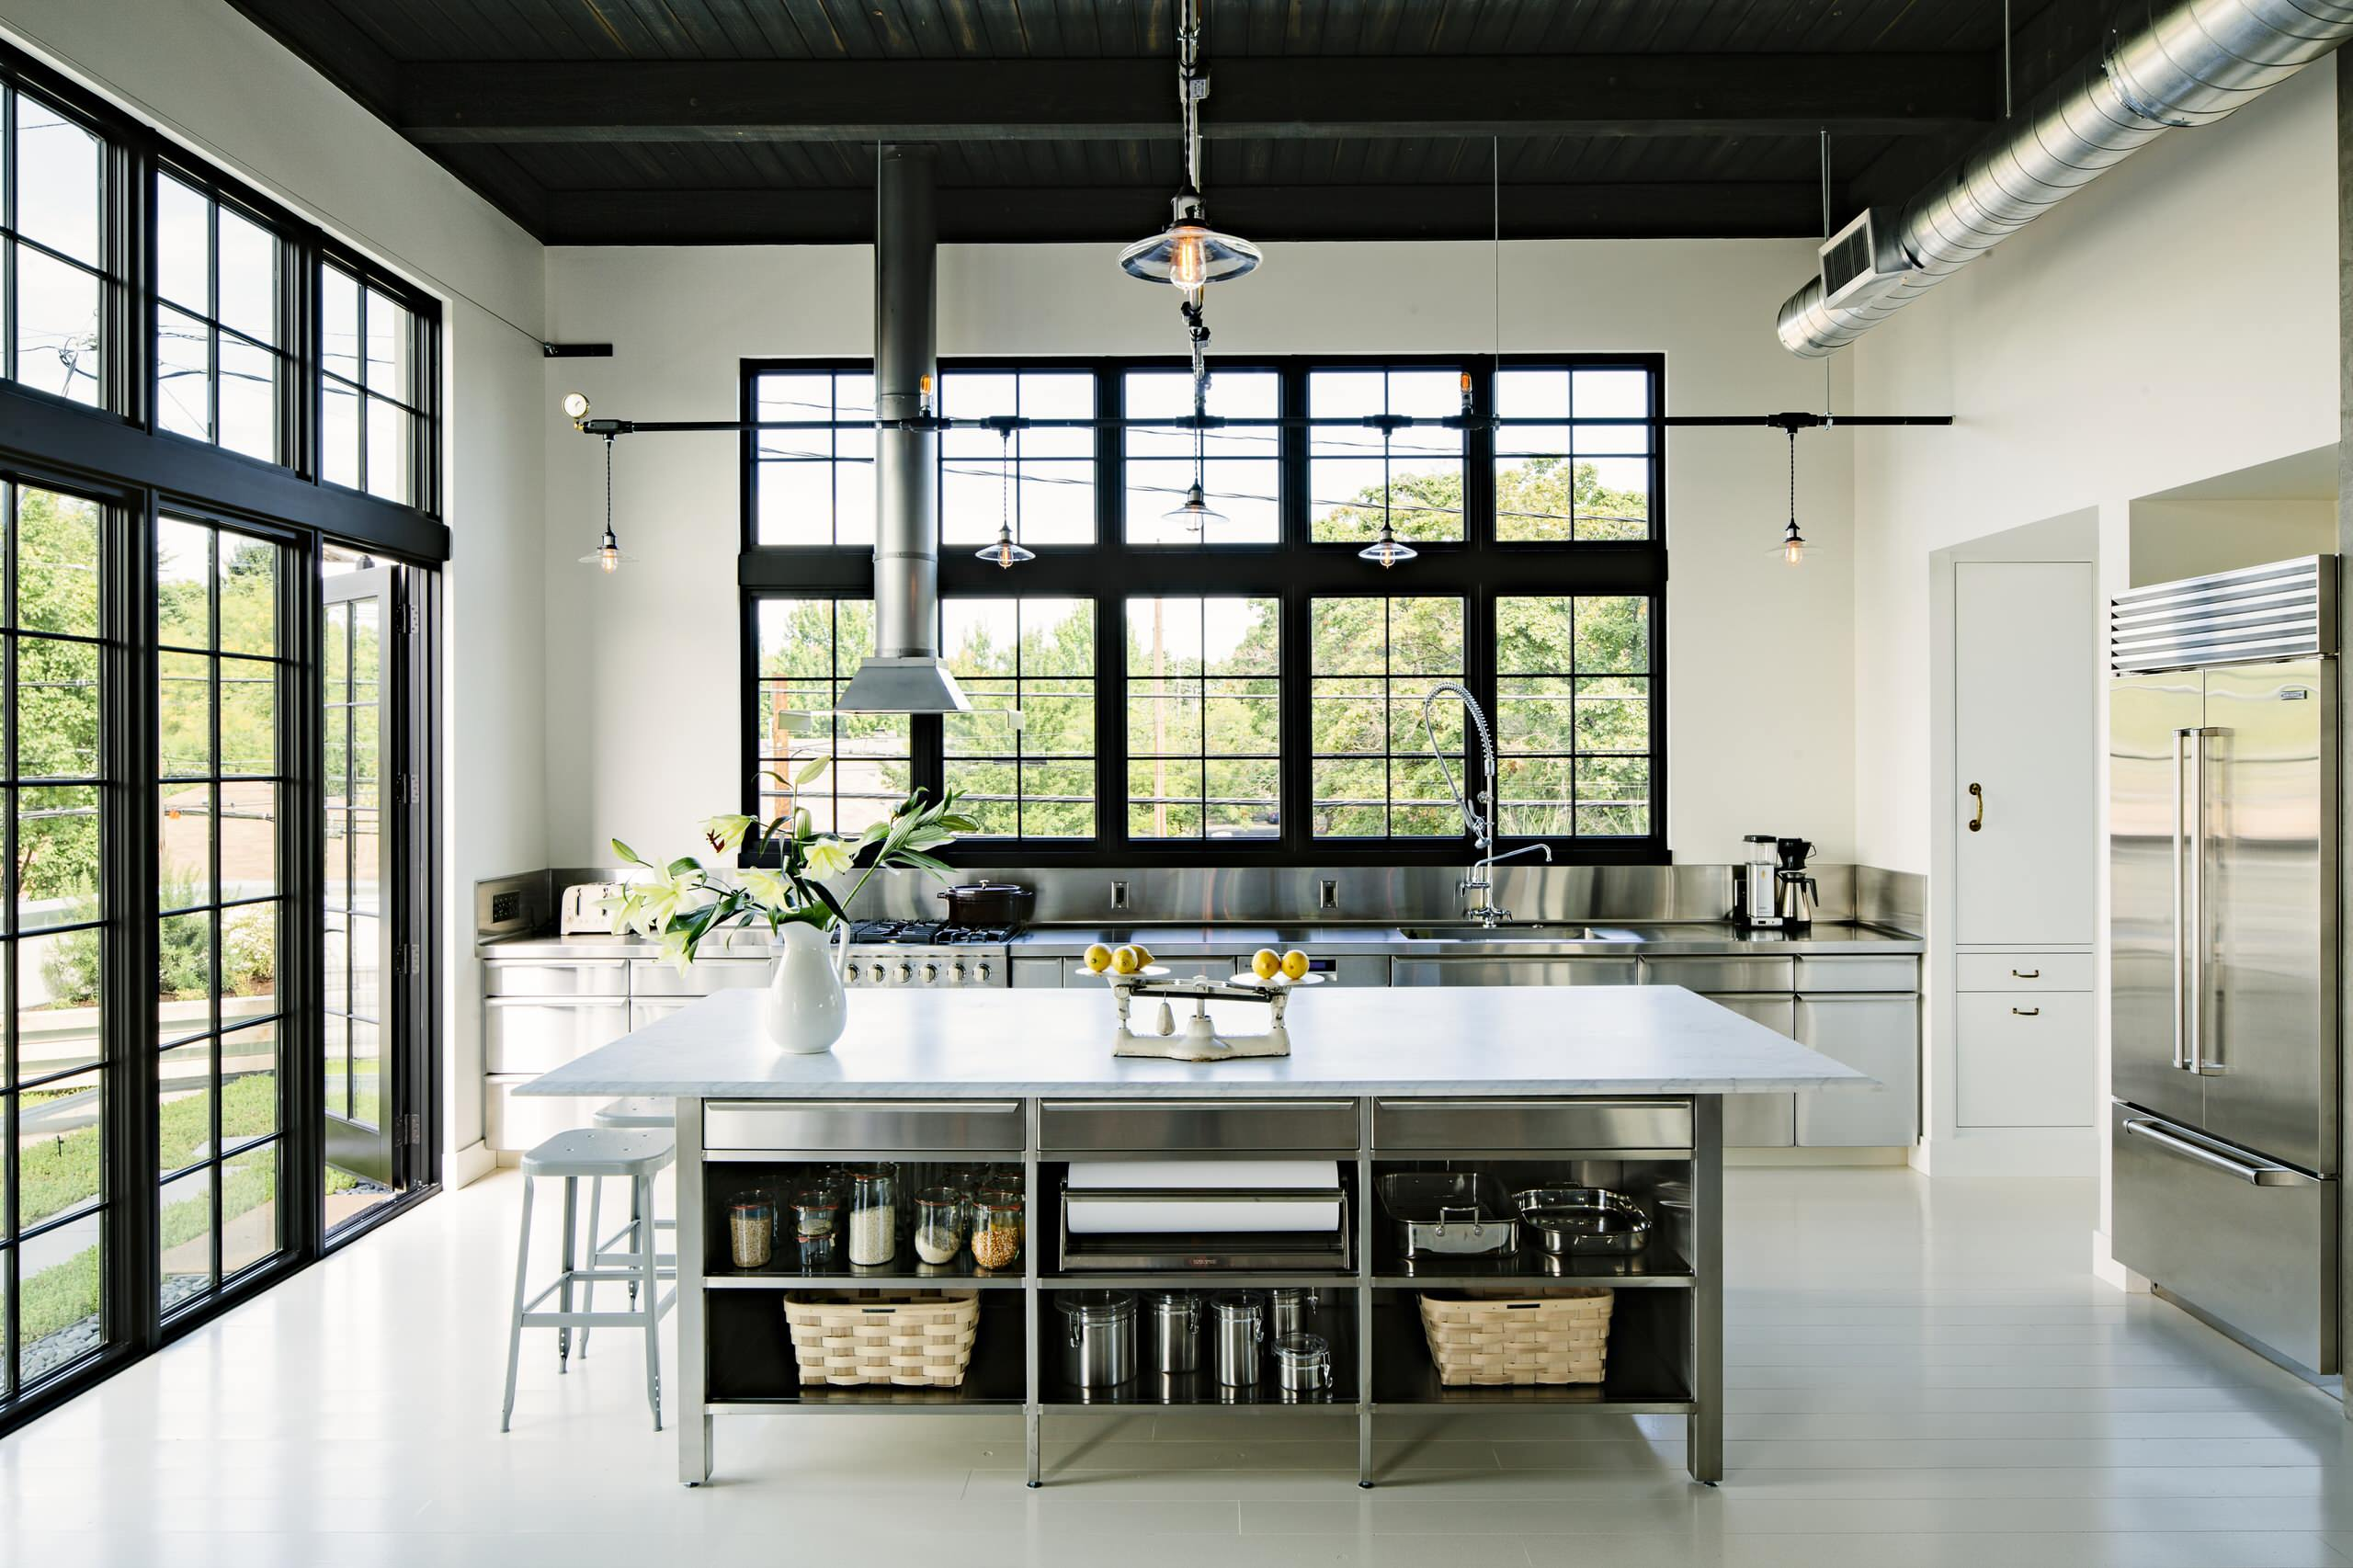 75 Beautiful Kitchen With Stainless Steel Cabinets Pictures Ideas December 2020 Houzz